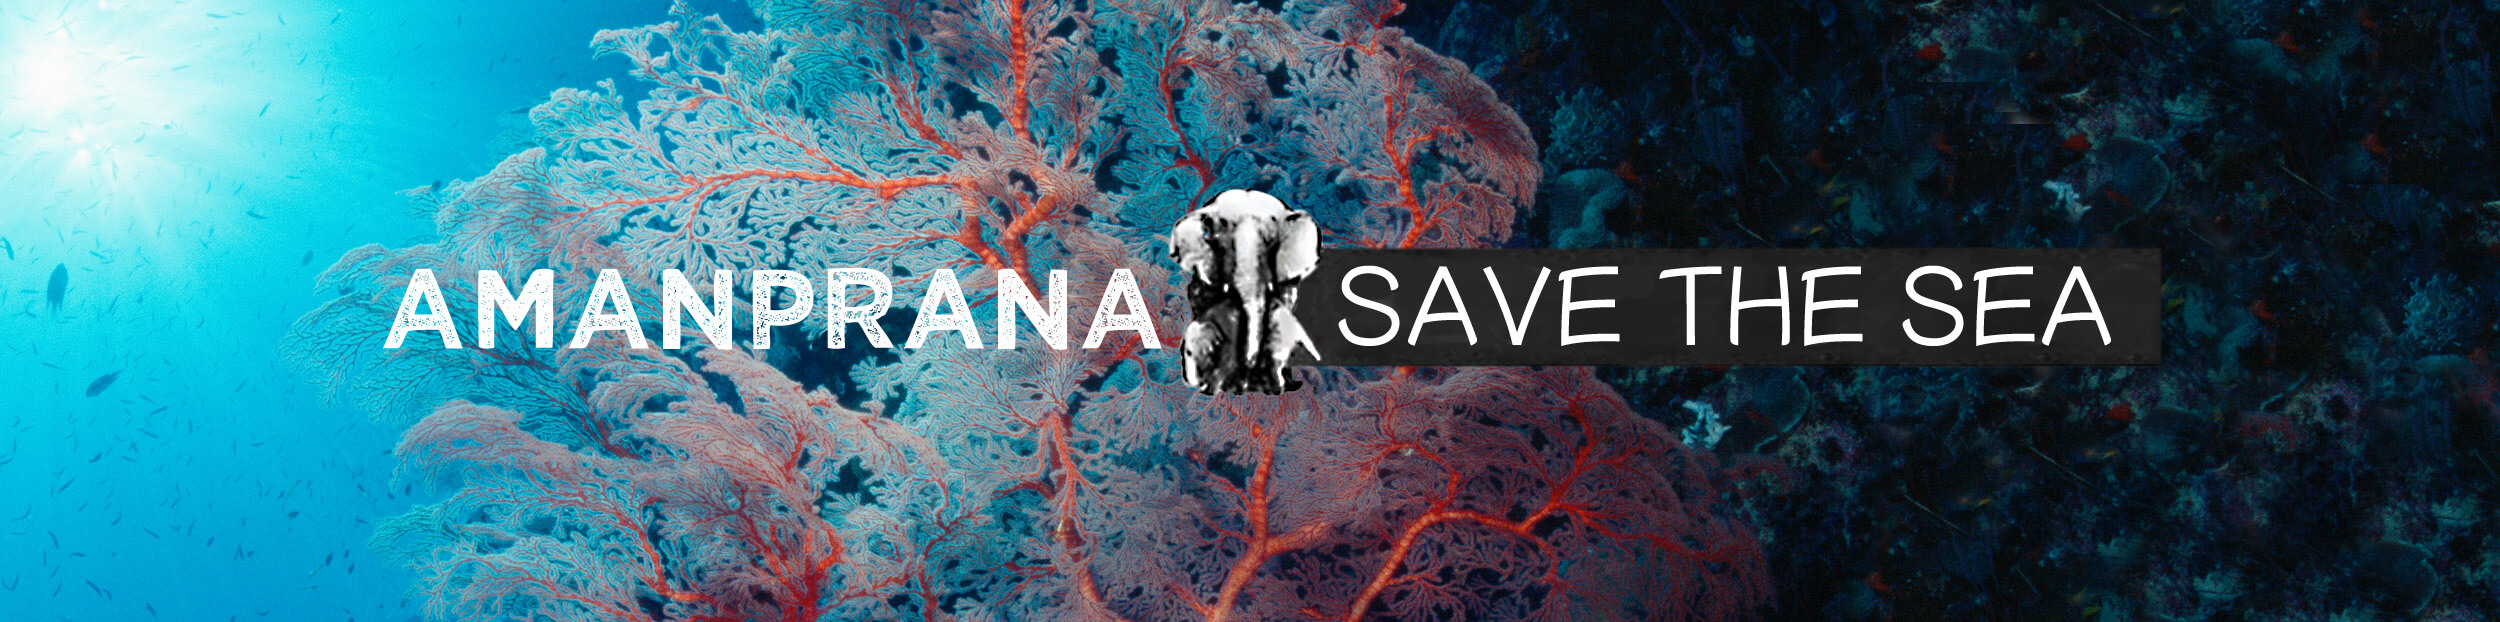 Save the Sea with Amanprana & strive for clean oceans, coasts